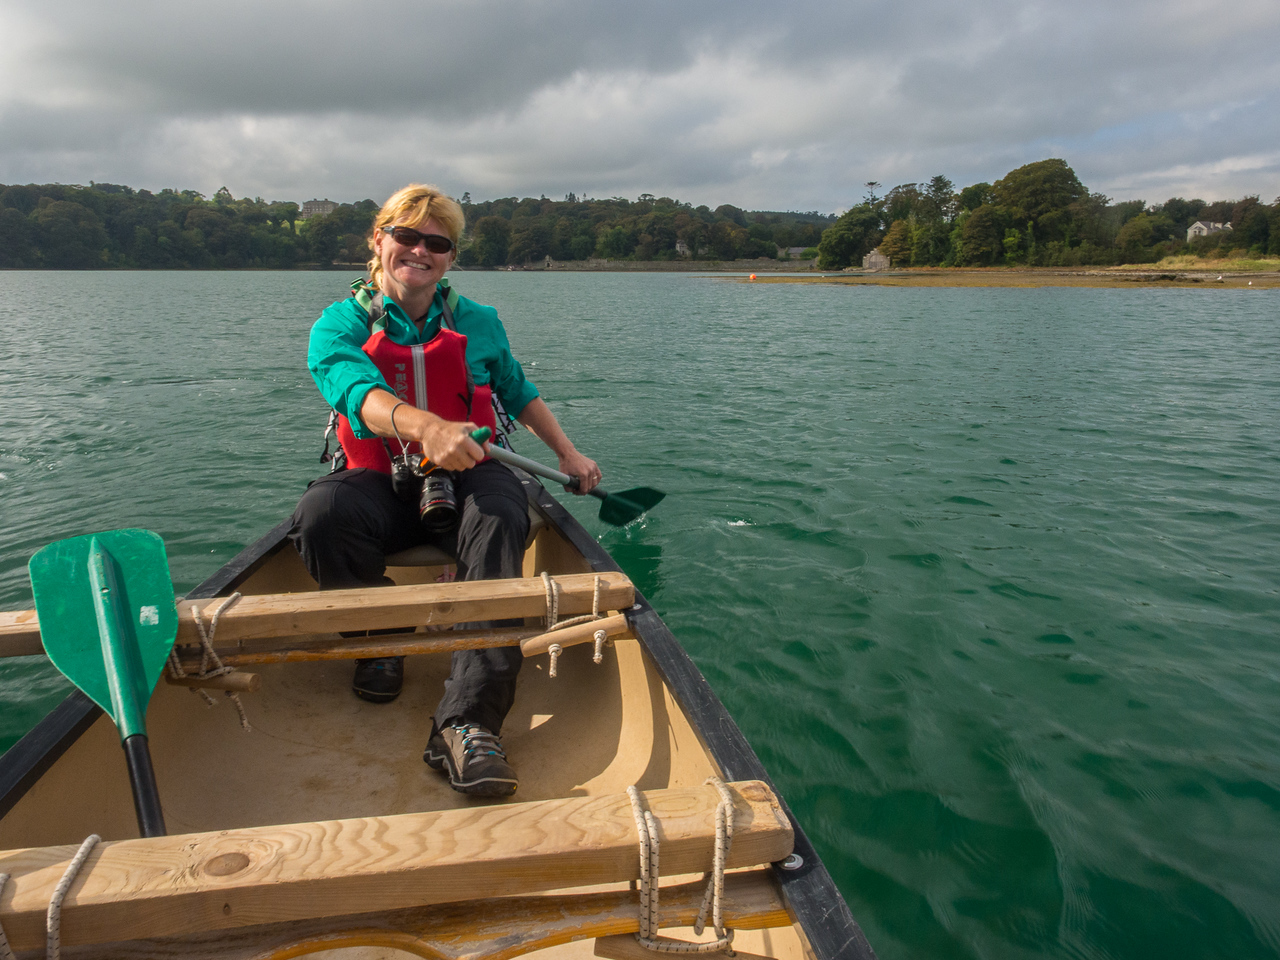 Deb Canoeing in Northern Ireland